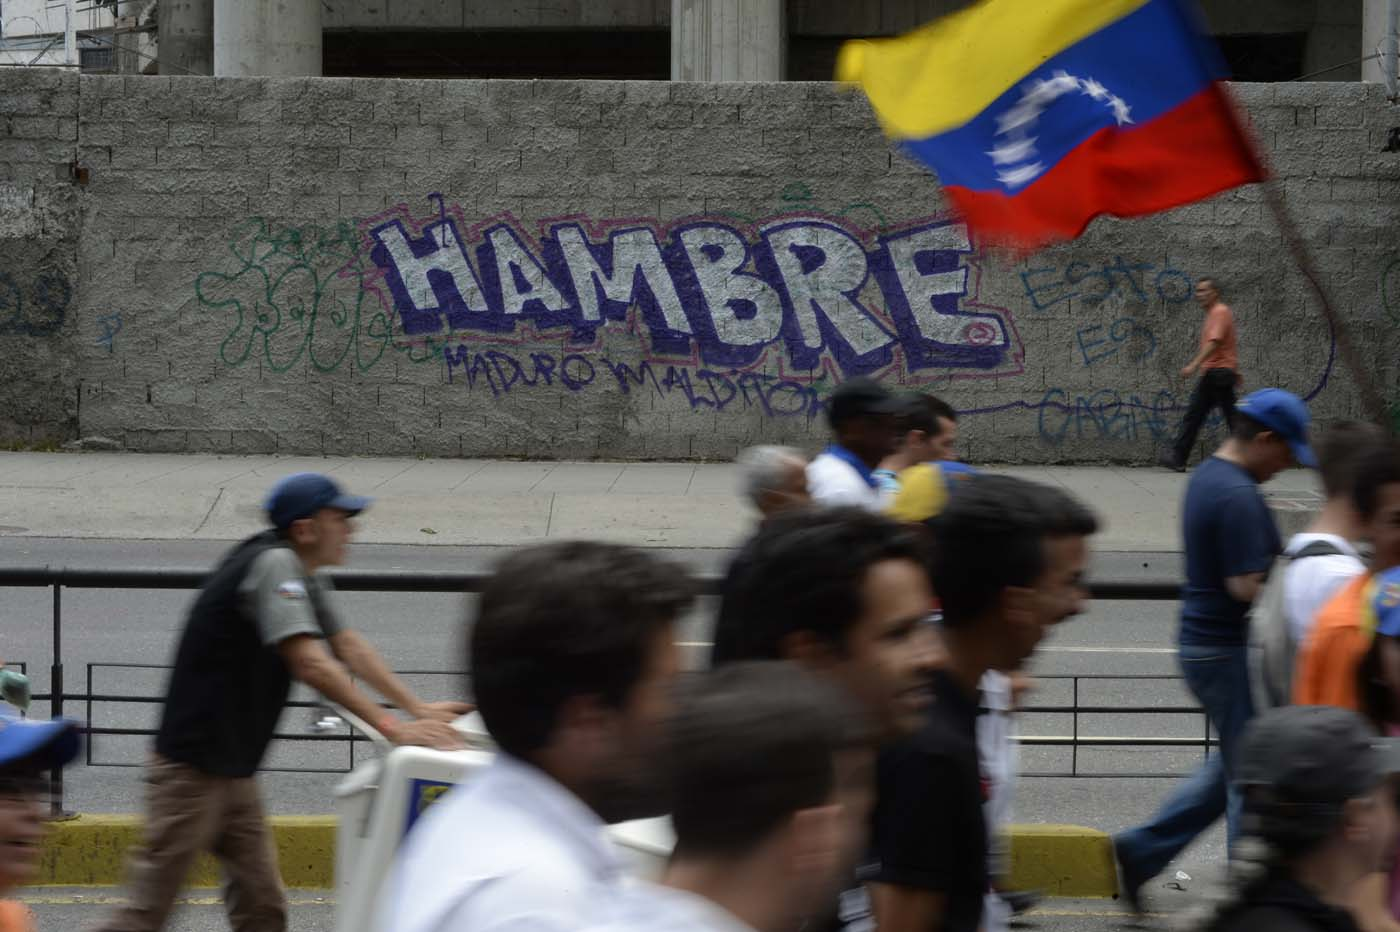 Opposition activists protest against the government of President Nicolas Maduro, at the Francisco Fajardo highway in Caracas, on July 1, 2017. Venezuela marks three months of violent protests within a political and economic crisis with protesters demanding President Nicolas Maduro's resignation and new elections. / AFP PHOTO / FEDERICO PARRA